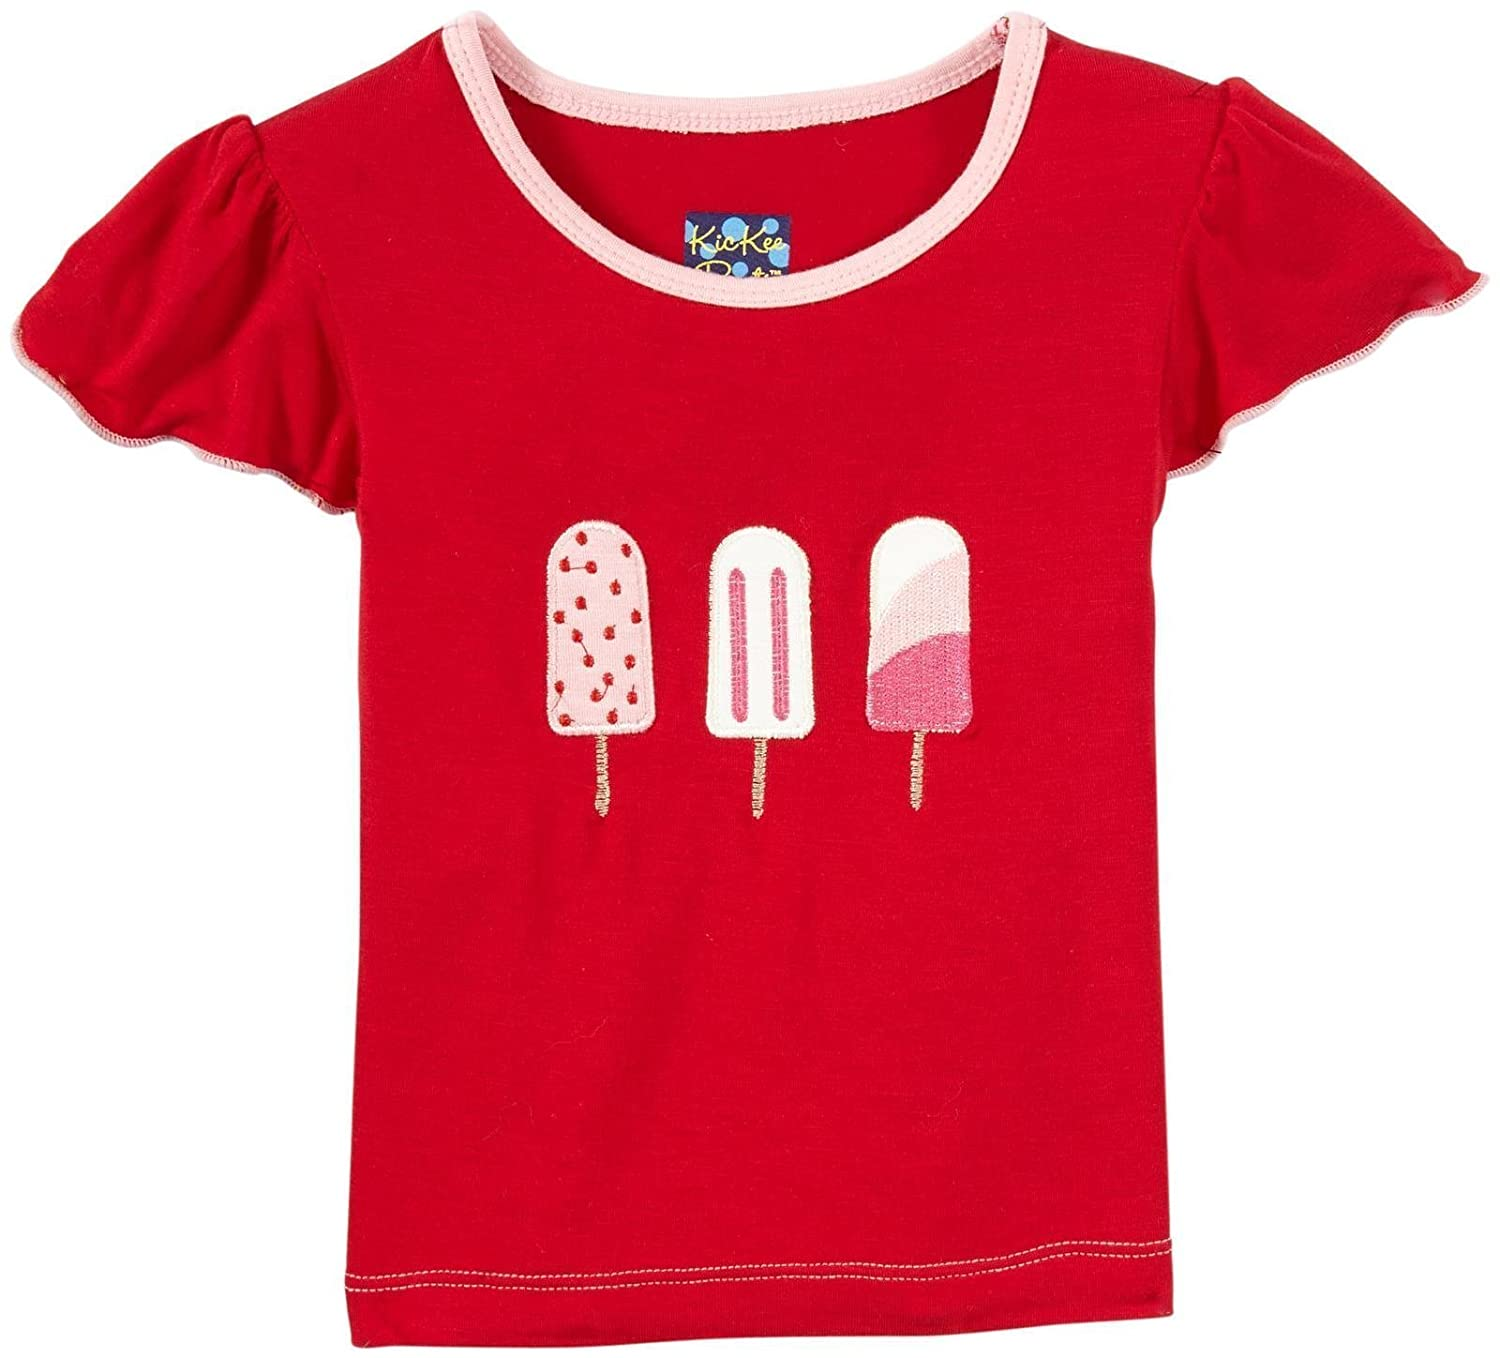 Balloon Popsicle Baby Kickee Pants Applique Tee